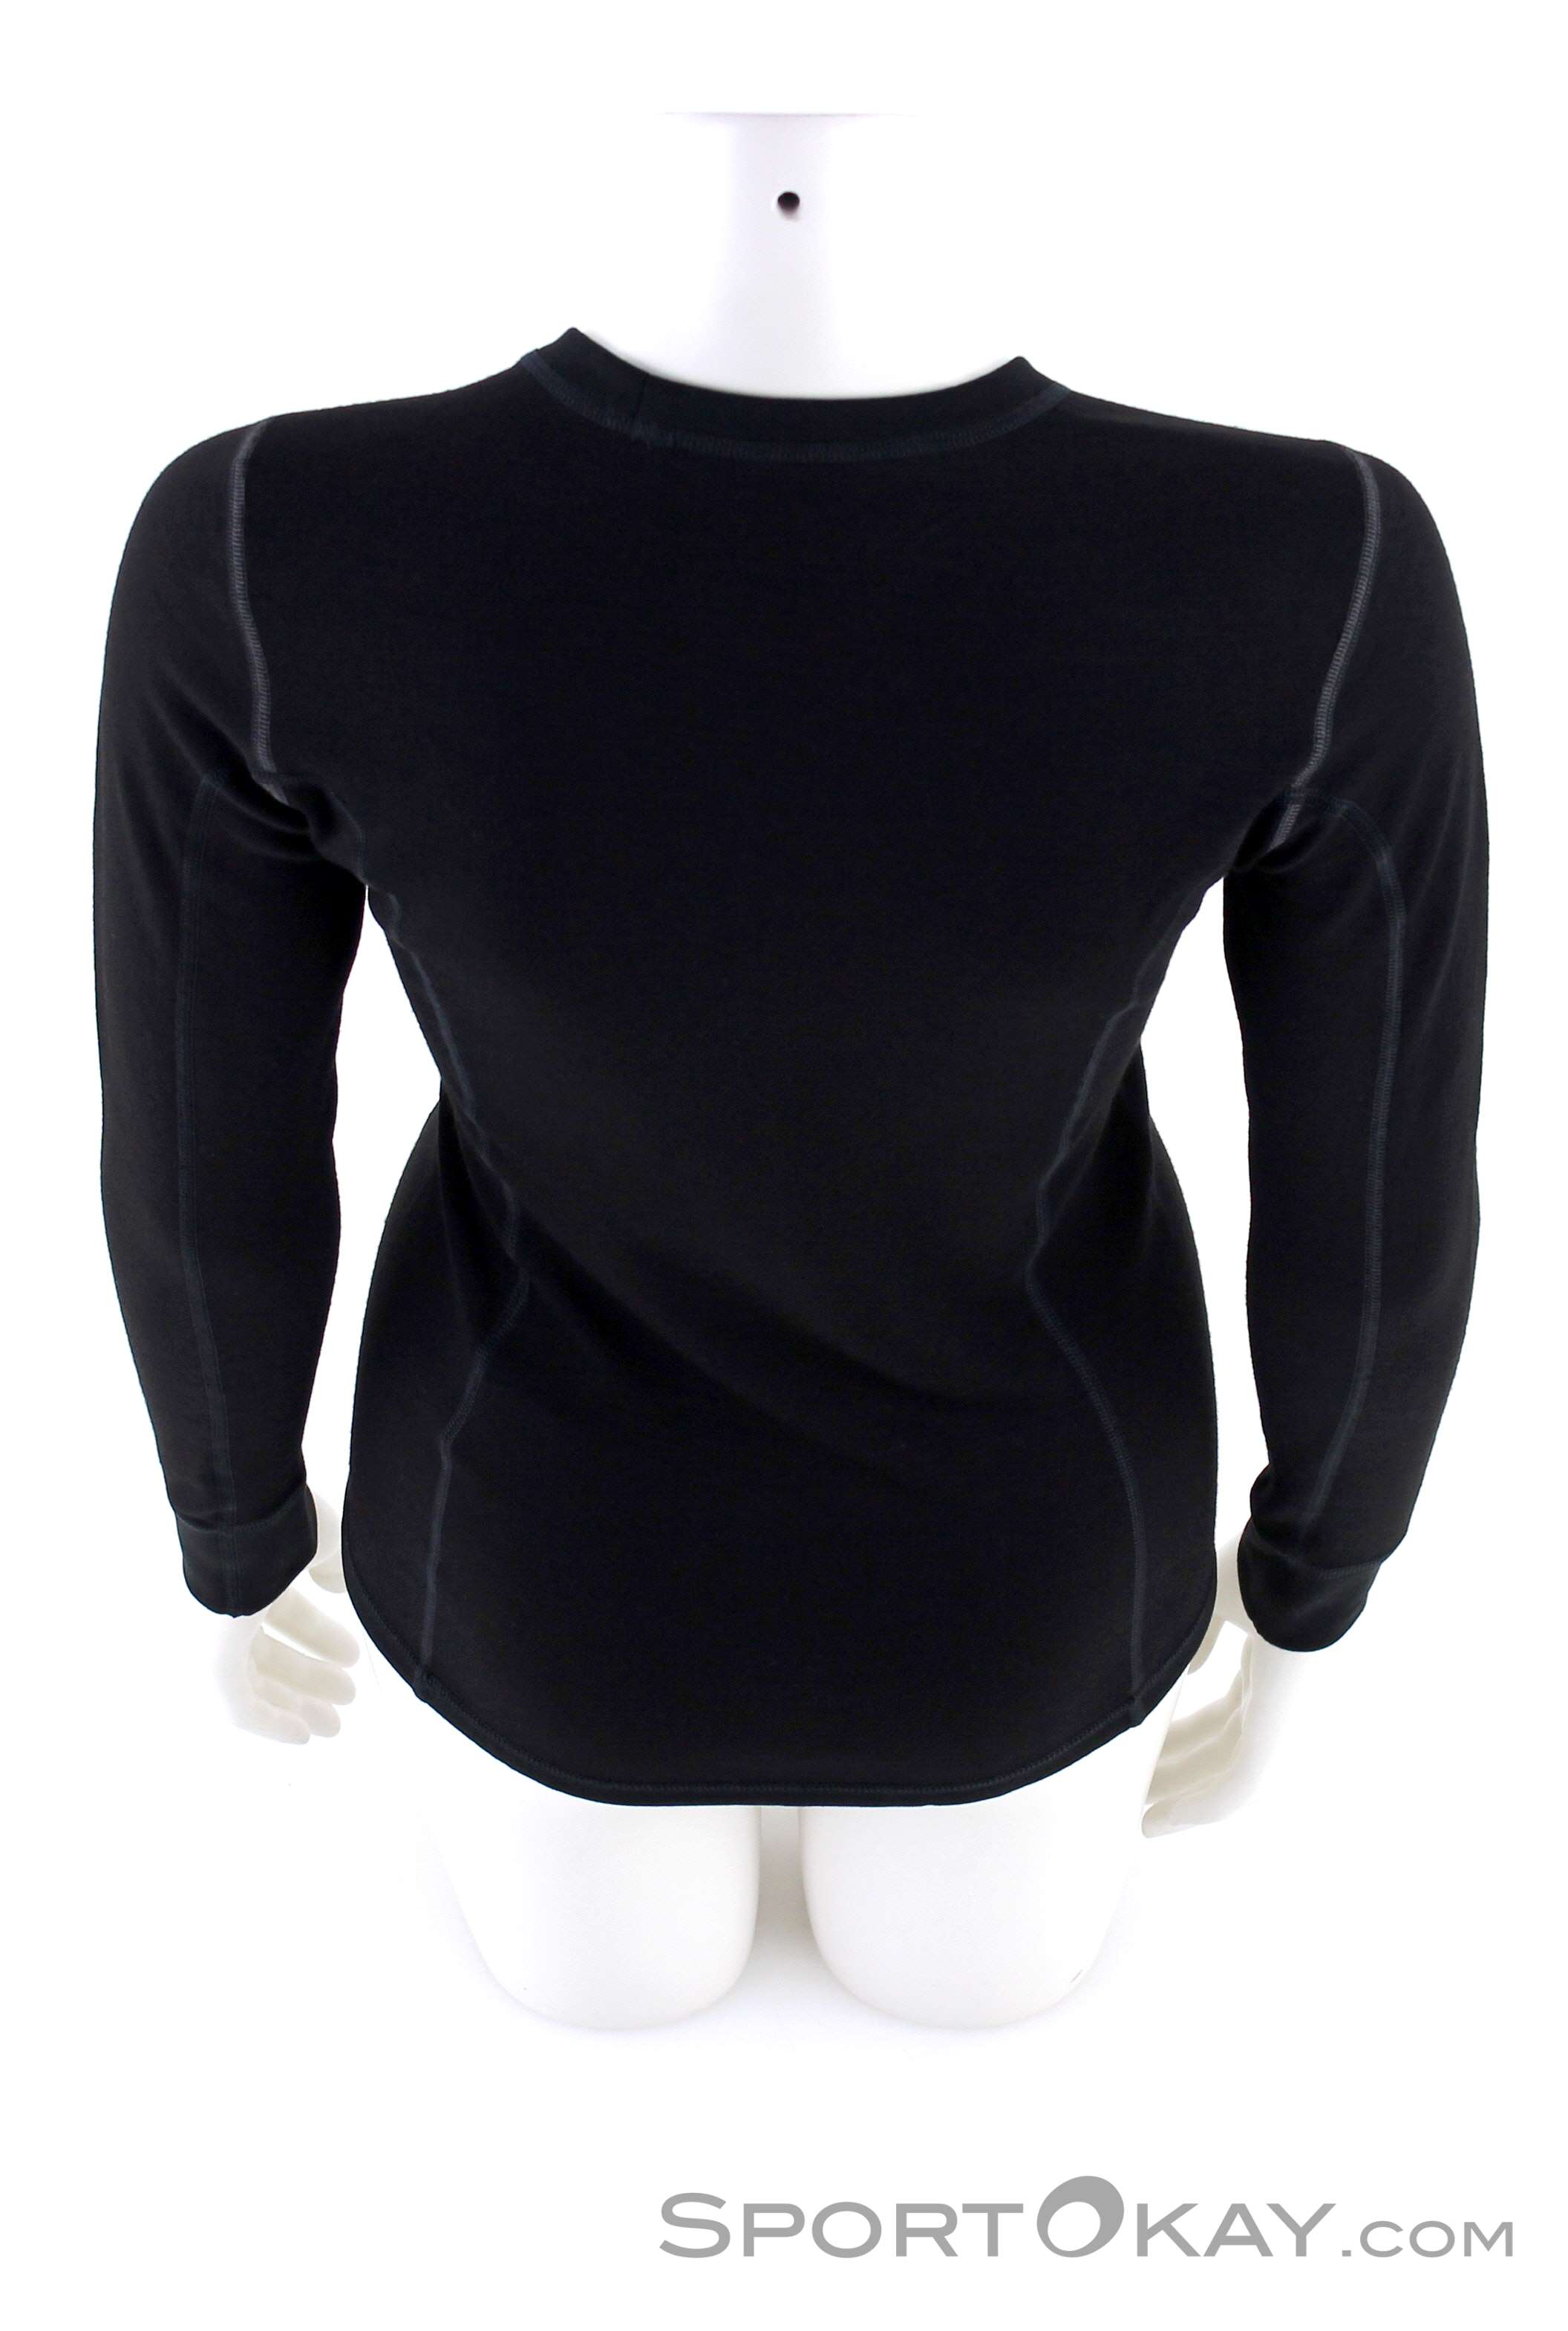 d0a0c801 Ortovox 210 Supersoft Long Sleeve Womens Functional Shirt , Ortovox, Black,  , Female,